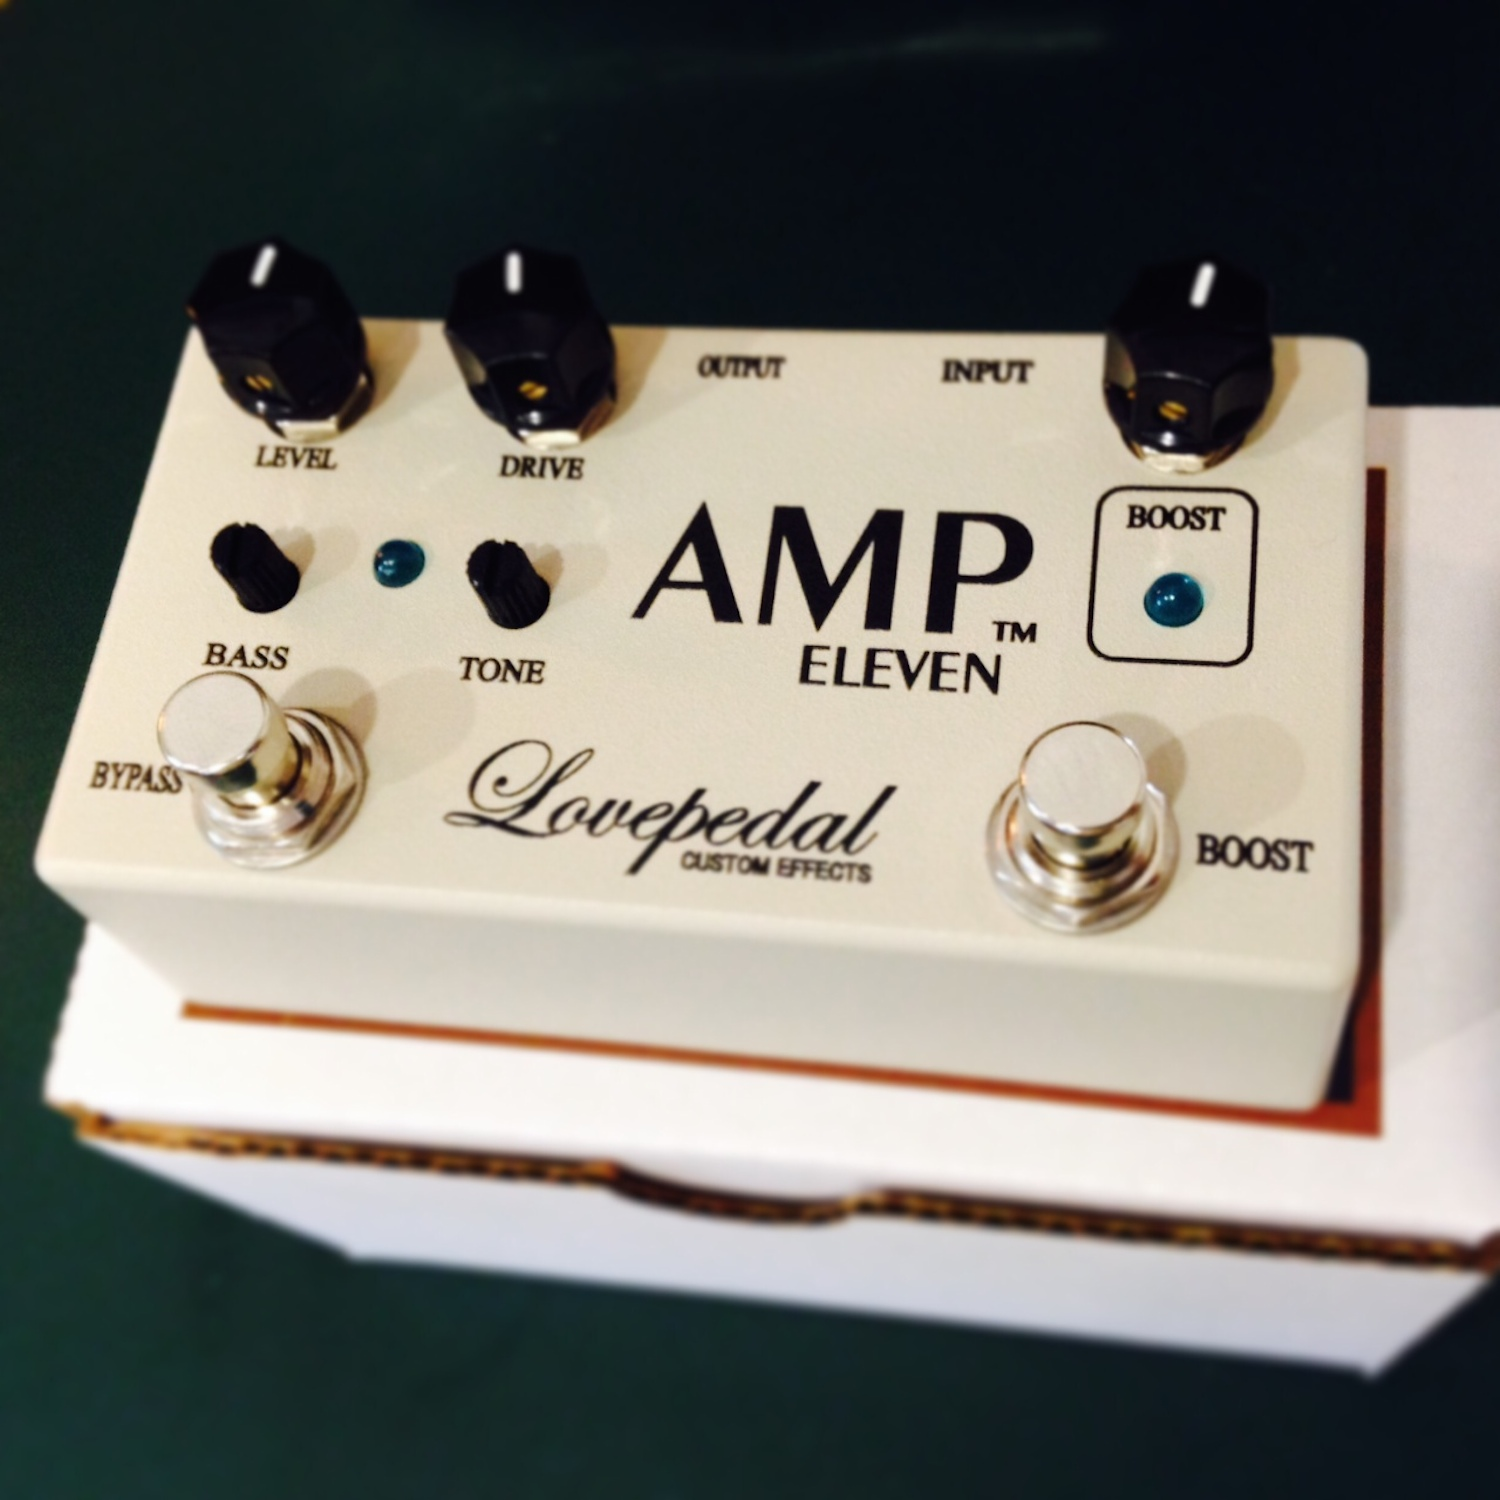 Lovepedal Amp Eleven Overdrive